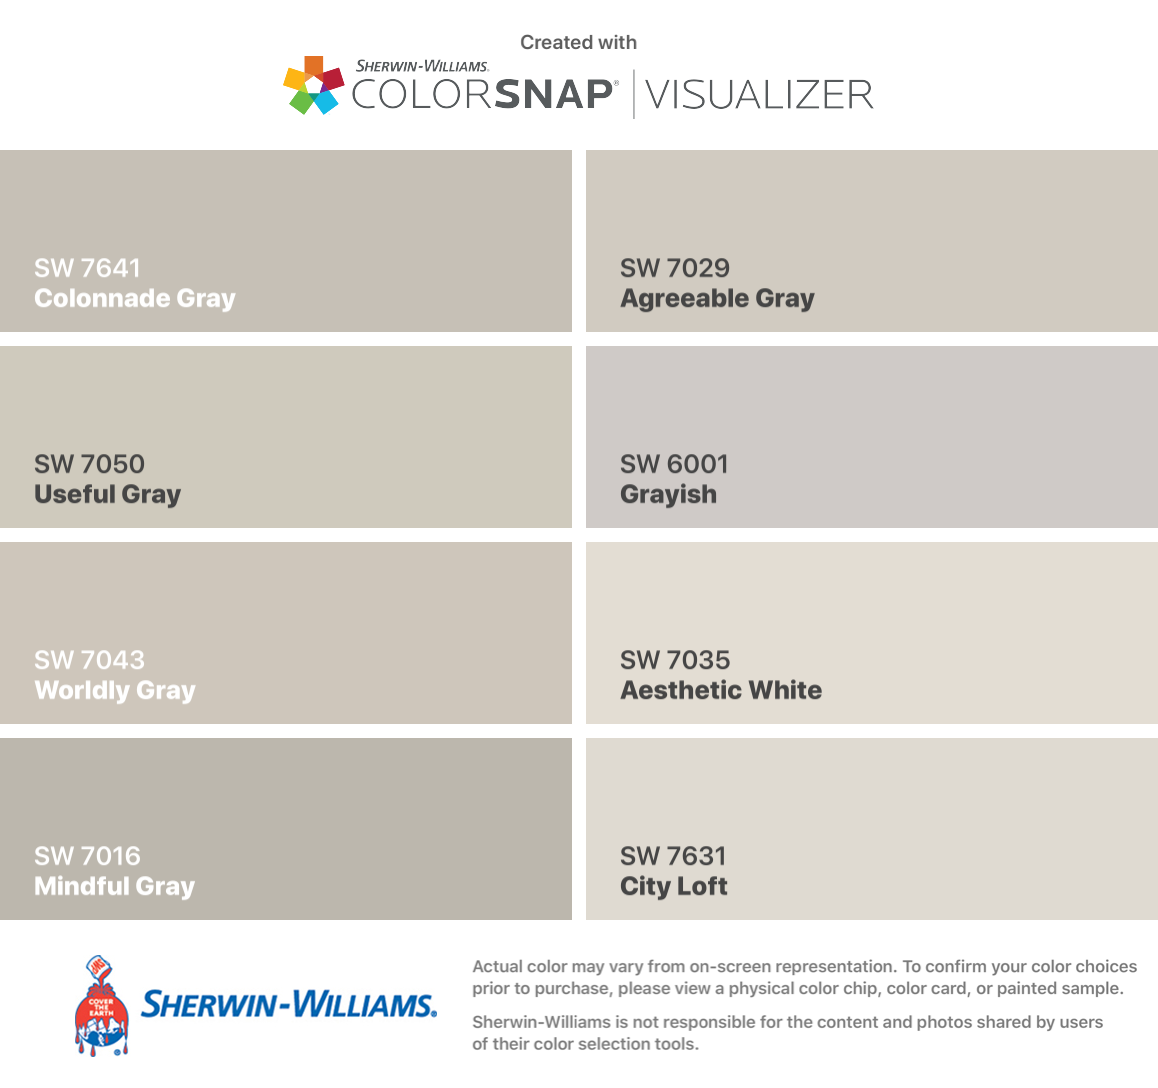 I found these colors with ColorSnap® Visualizer for iPhone by Sherwin-Williams: Colonnade Gray (SW 7641), Useful Gray (SW 7050), Worldly Gray (SW 7043), Mindful Gray (SW 7016), Agreeable Gray (SW 7029), Grayish (SW 6001), Aesthetic White (SW 7035), City Loft (SW 7631). #cityloftsherwinwilliams